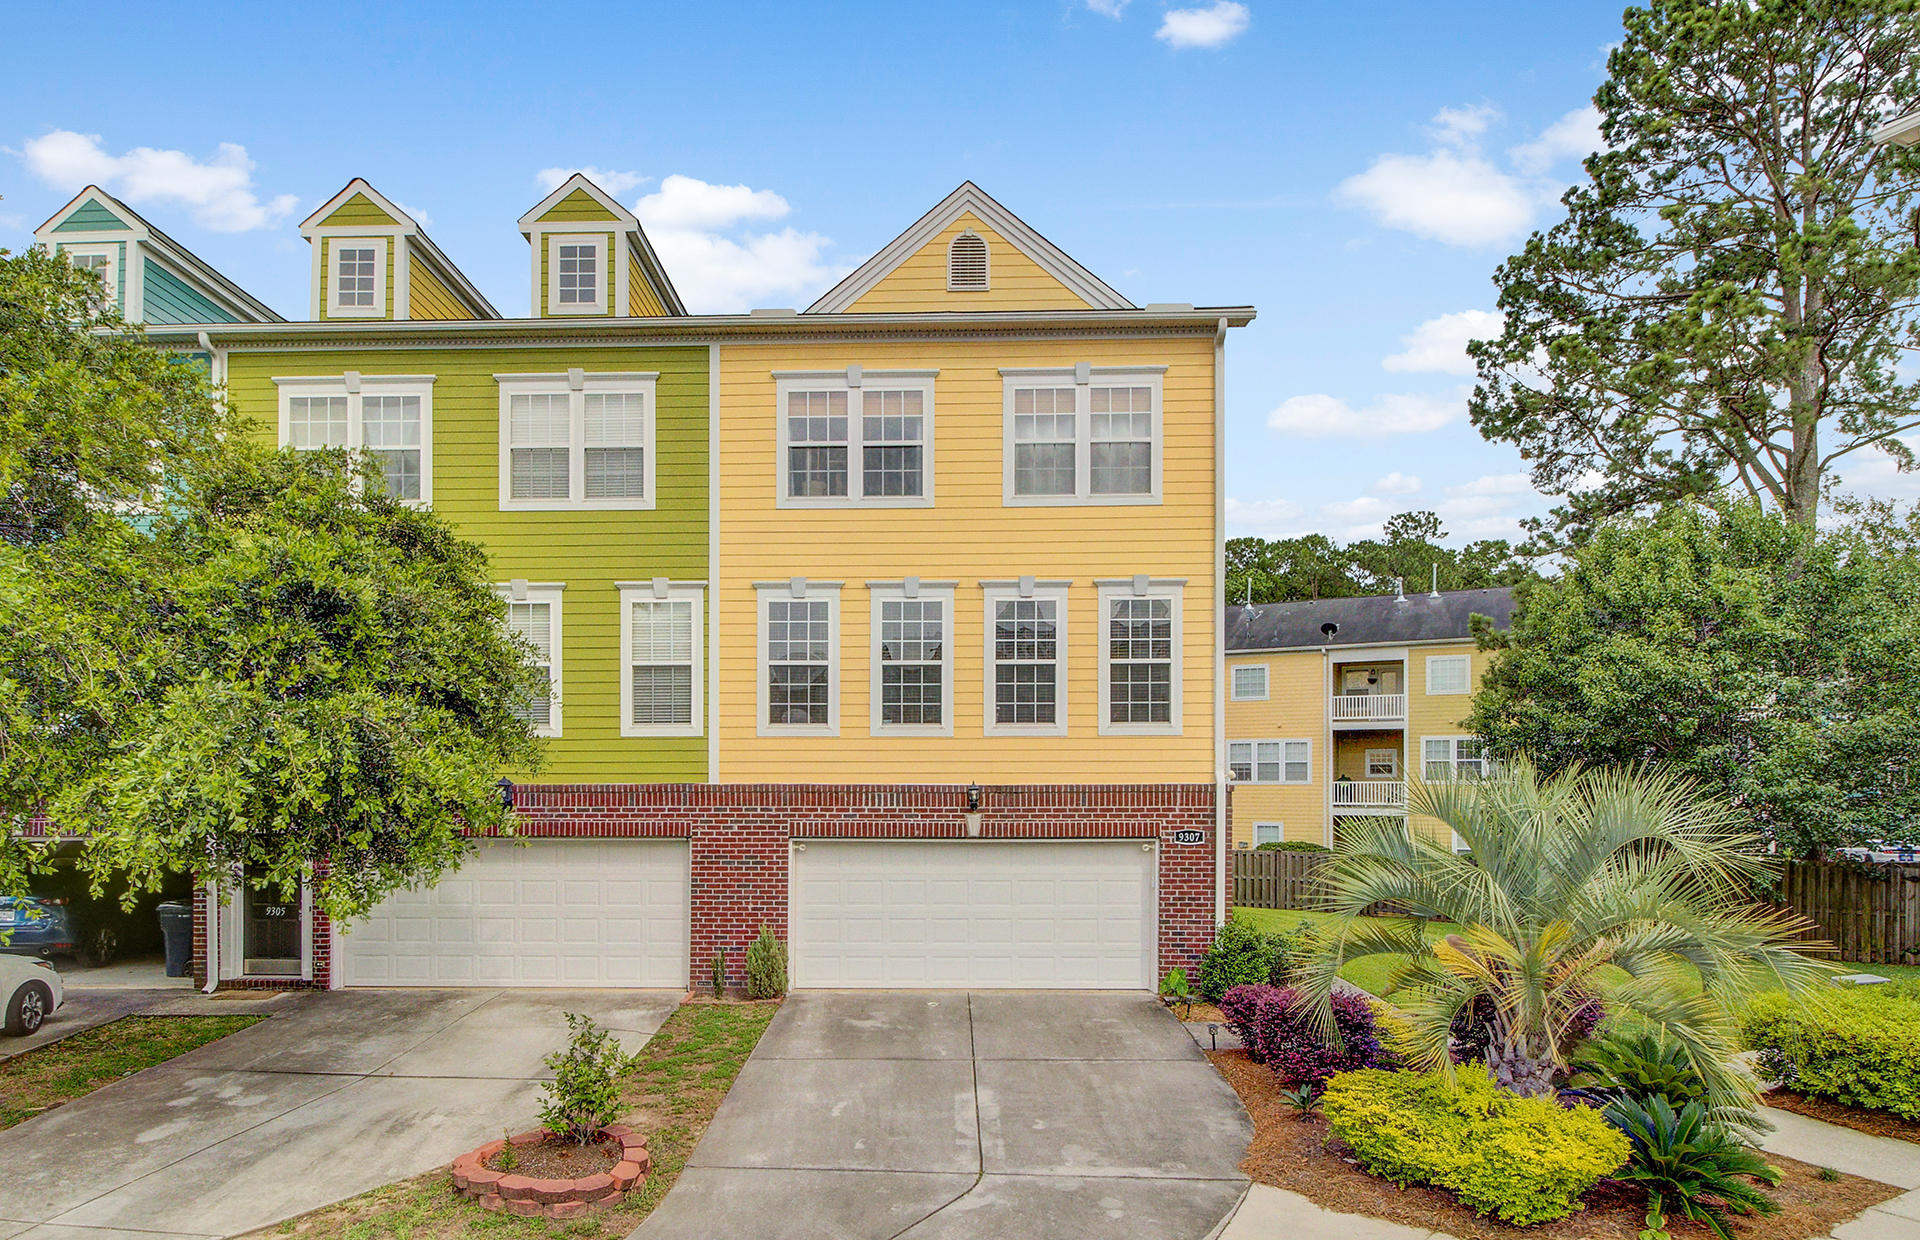 9307 Sweetbay Court Ladson, SC 29456